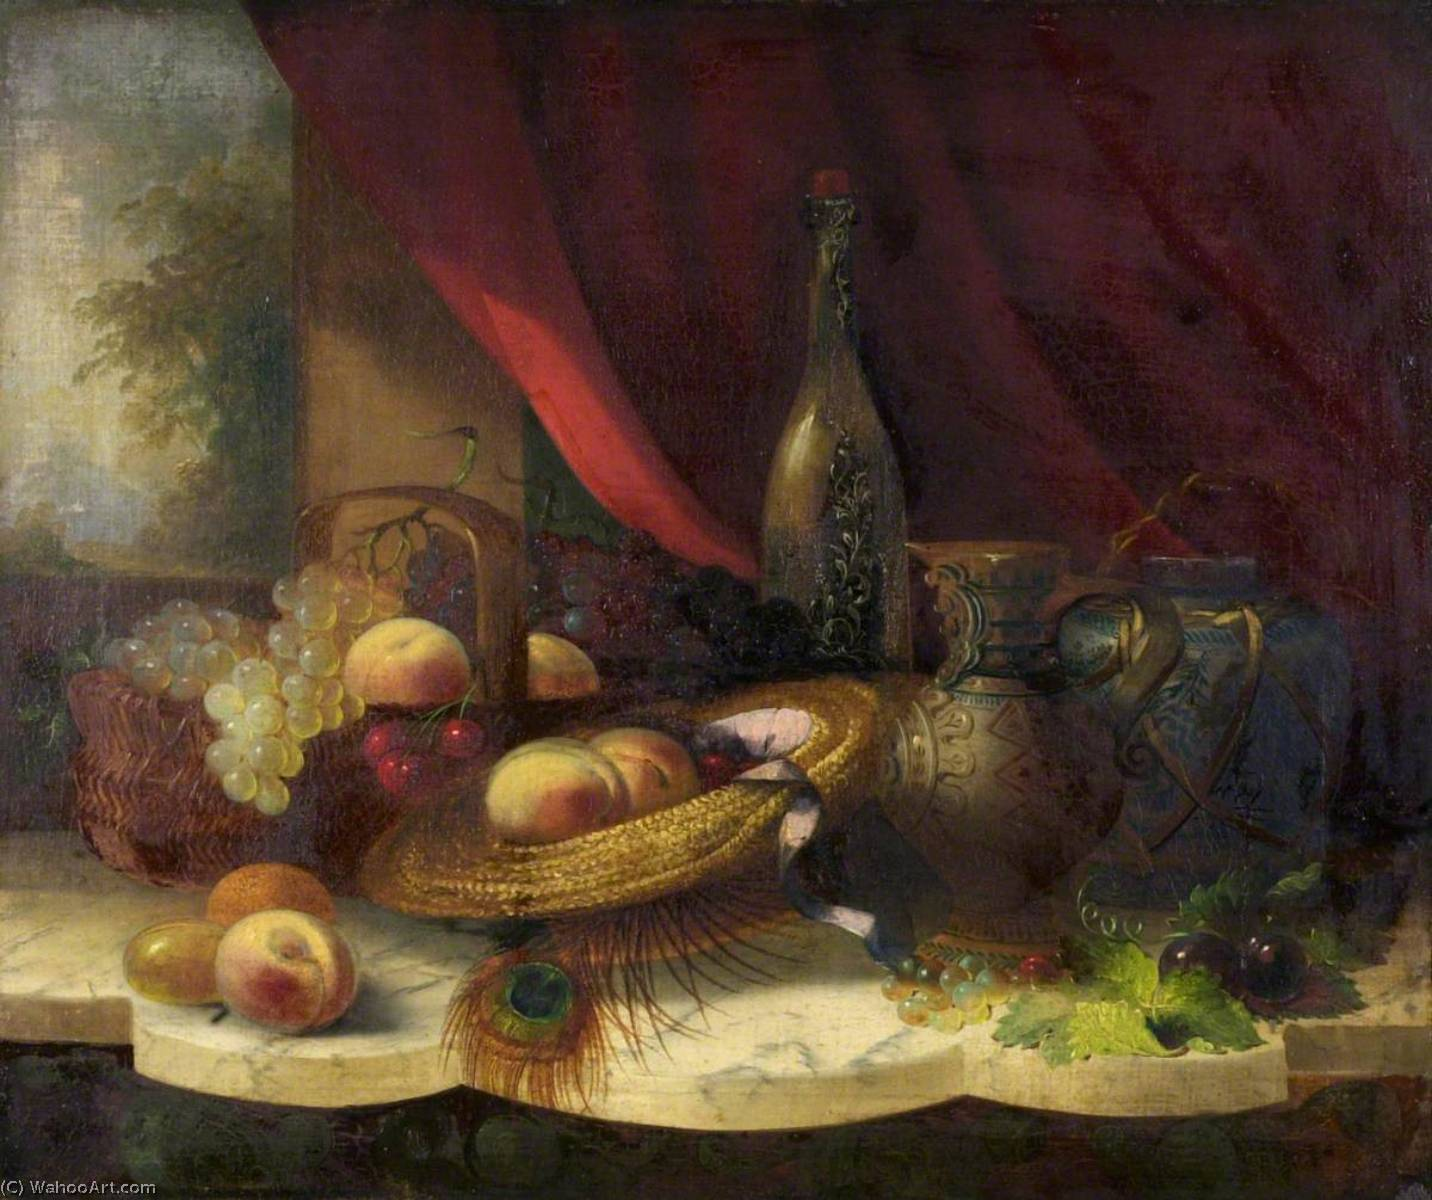 Still Life with Fruit, a Bottle and a Jug, 1850 by George Lance (1802-1864) | Reproductions George Lance | WahooArt.com